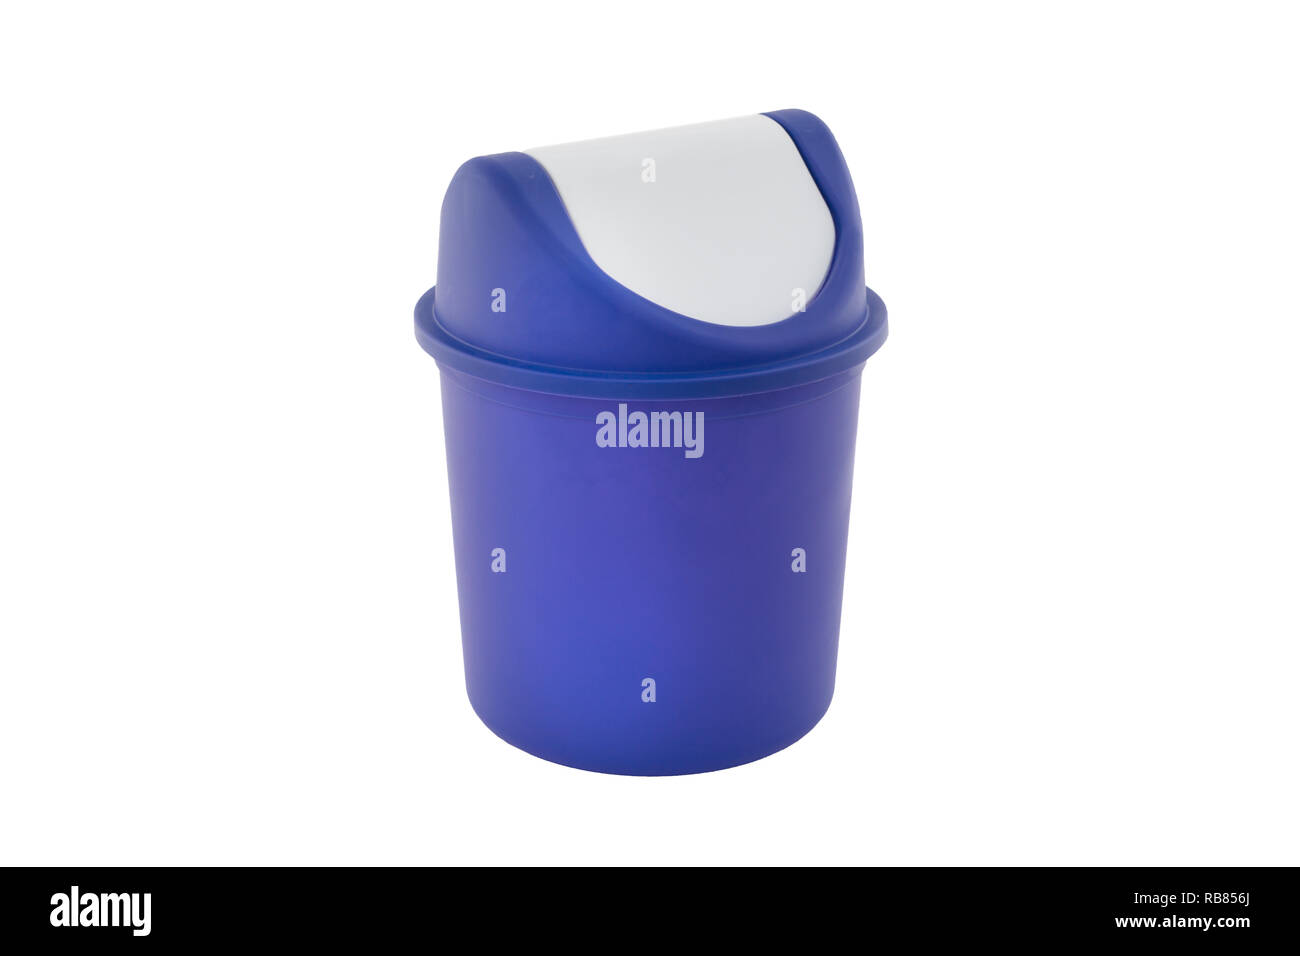 Trash can isolated on white background - Stock Image